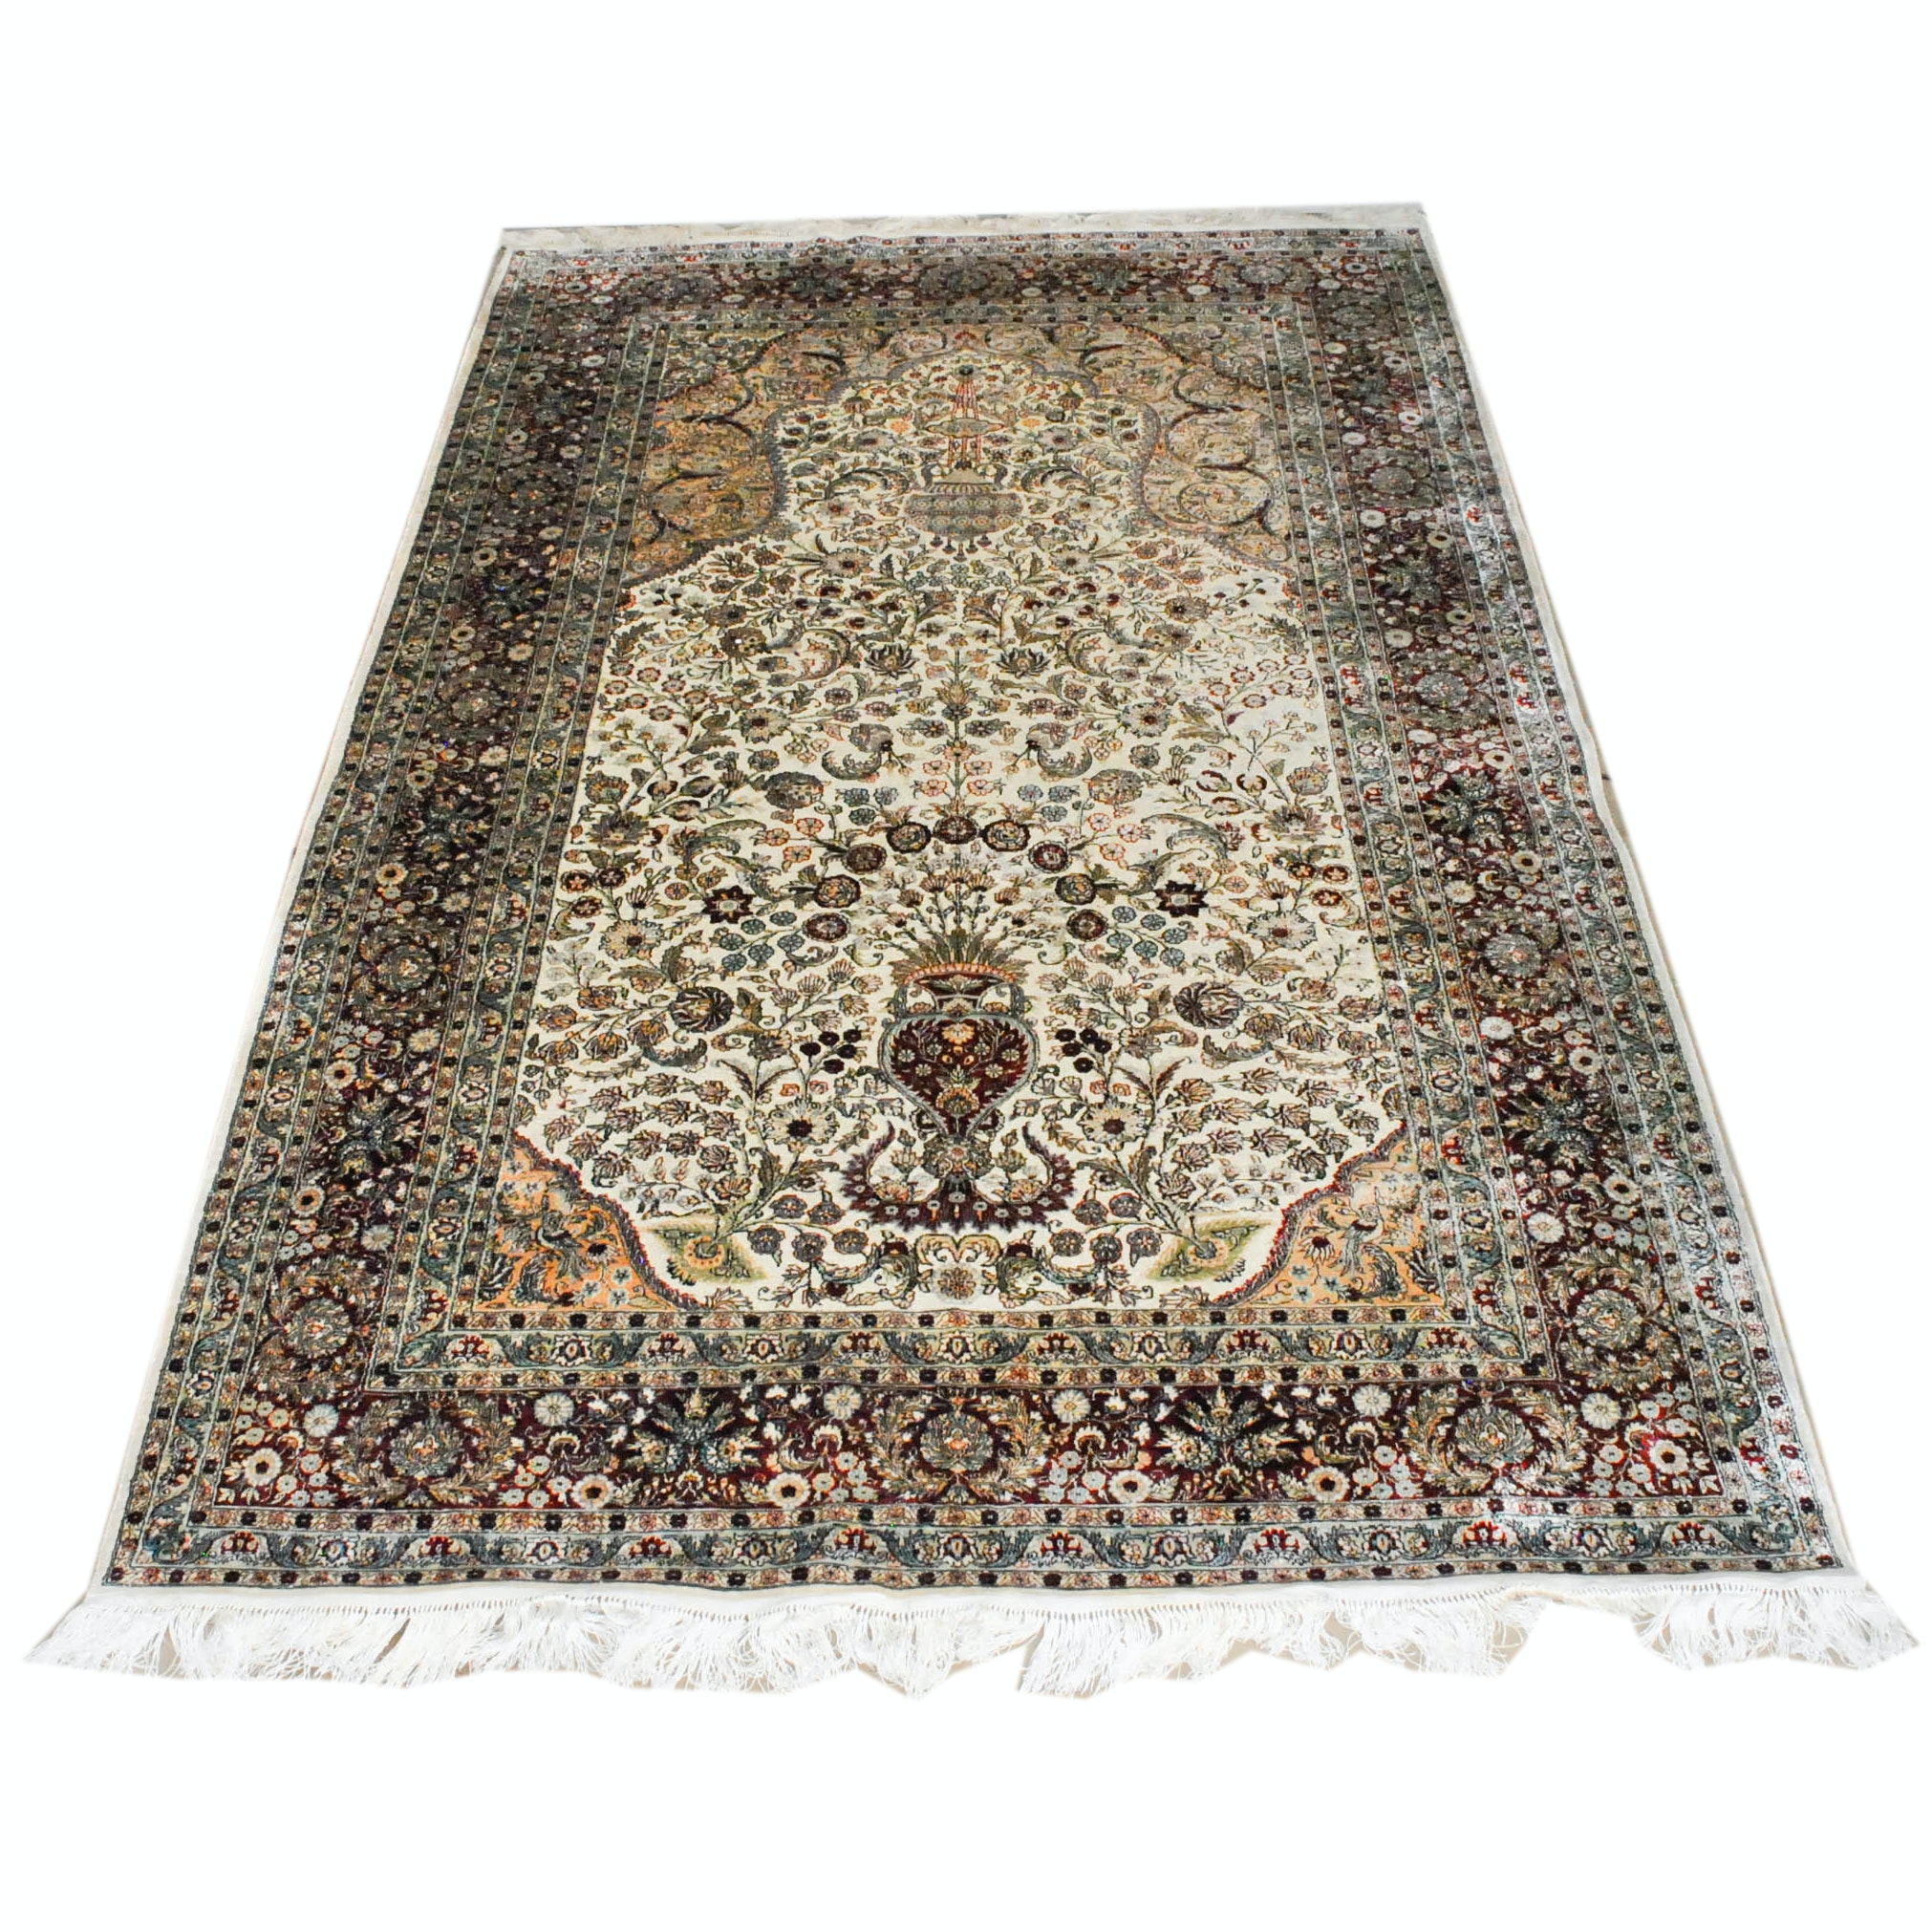 Finely Hand-Knotted Indian Kashmir Wool and Silk Blend Rug in Goldani Style